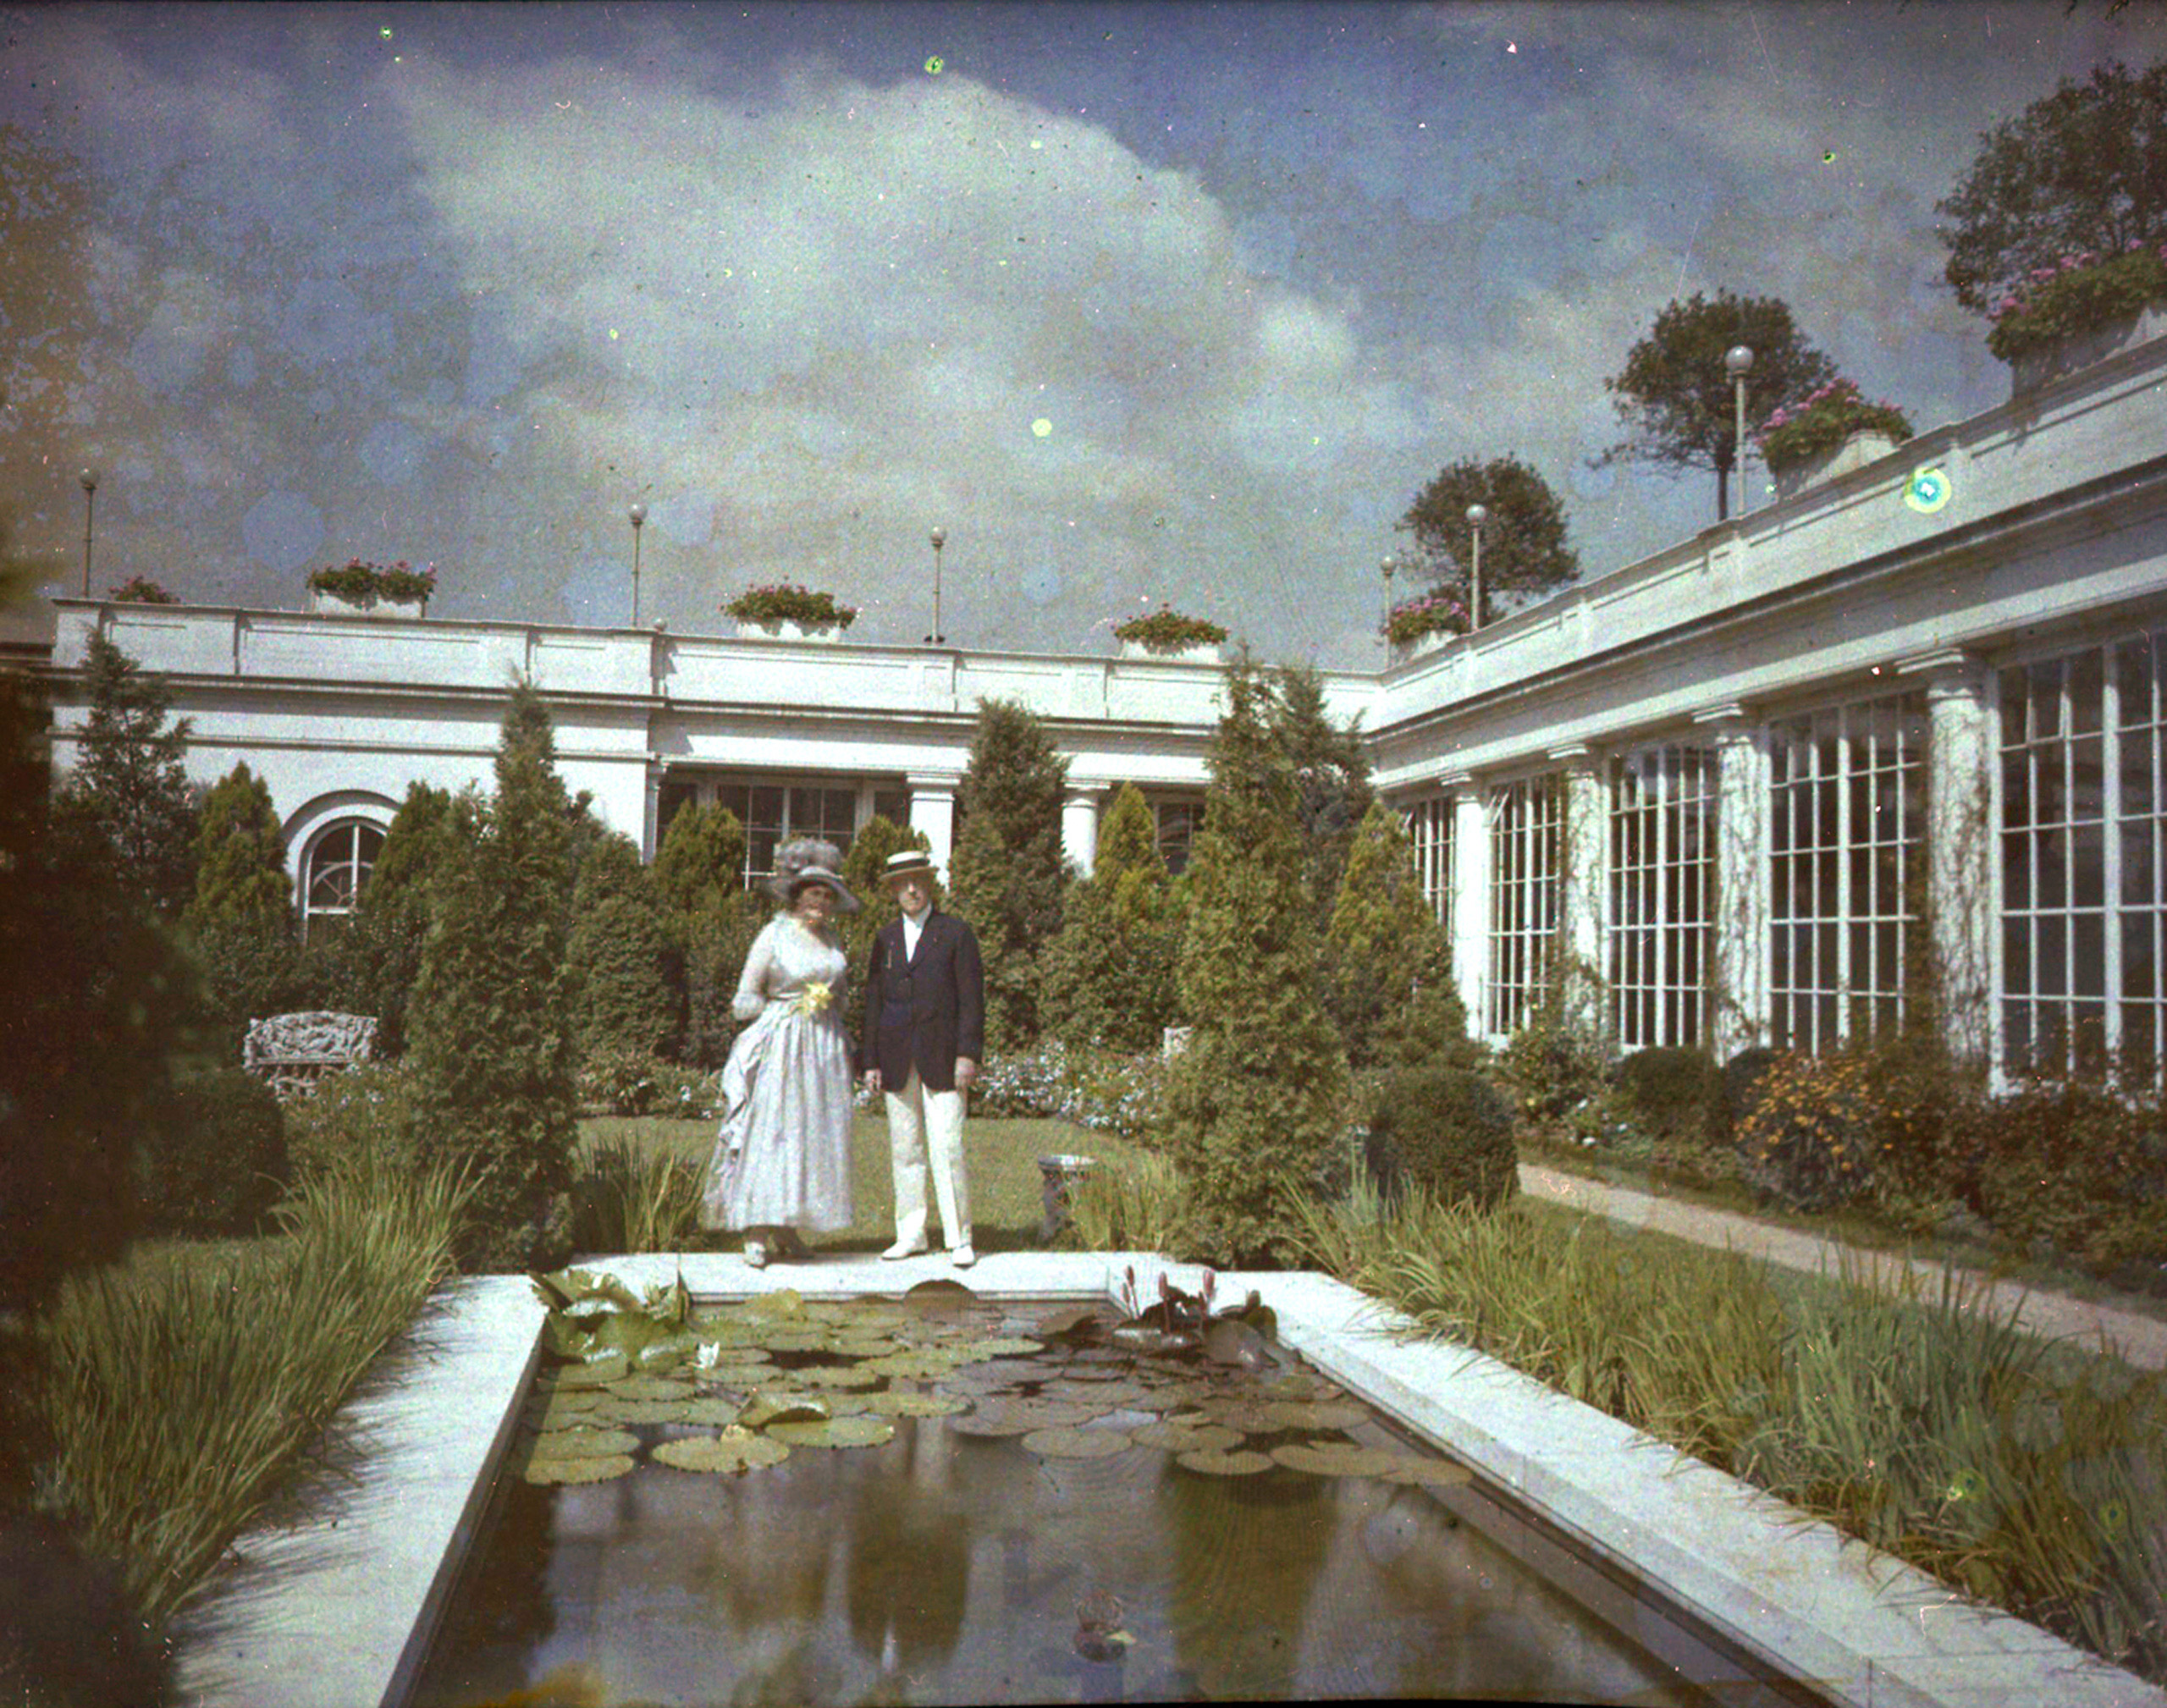 Edith and Woodrow Wilson enjoy the East Garden in their summer finery.